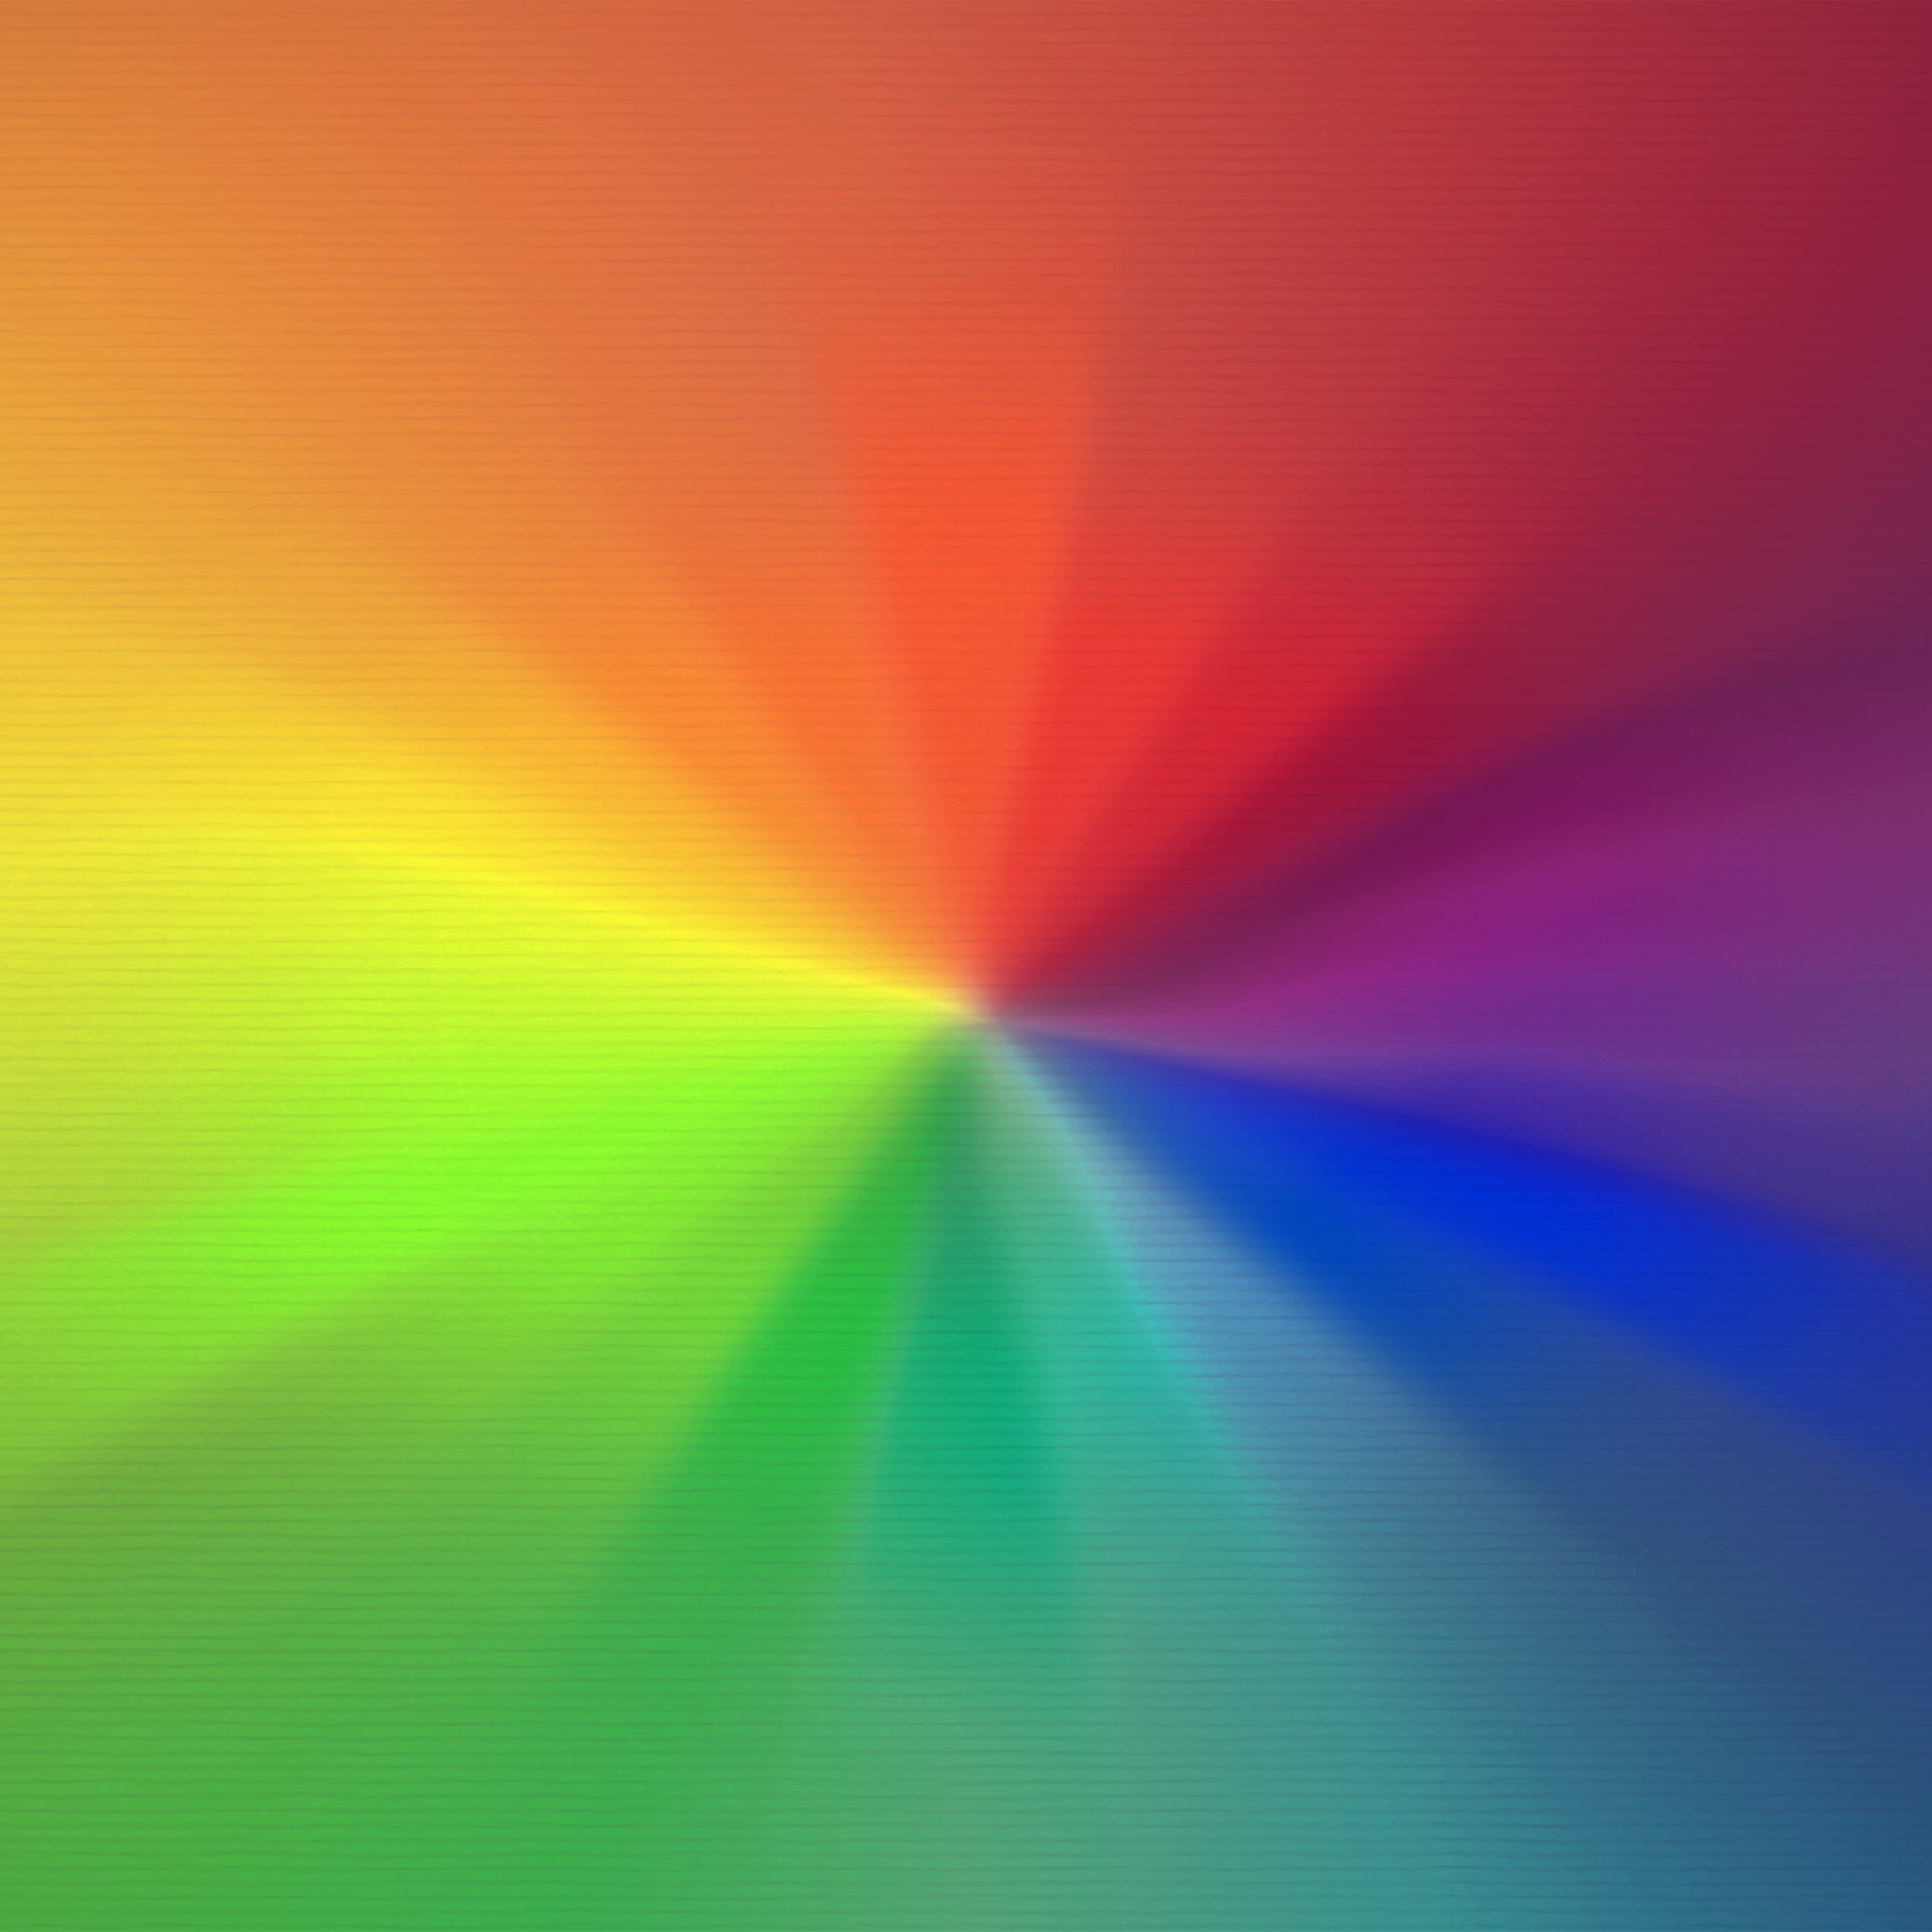 Colorful Iphone Wallpaper: WALLPAPERS